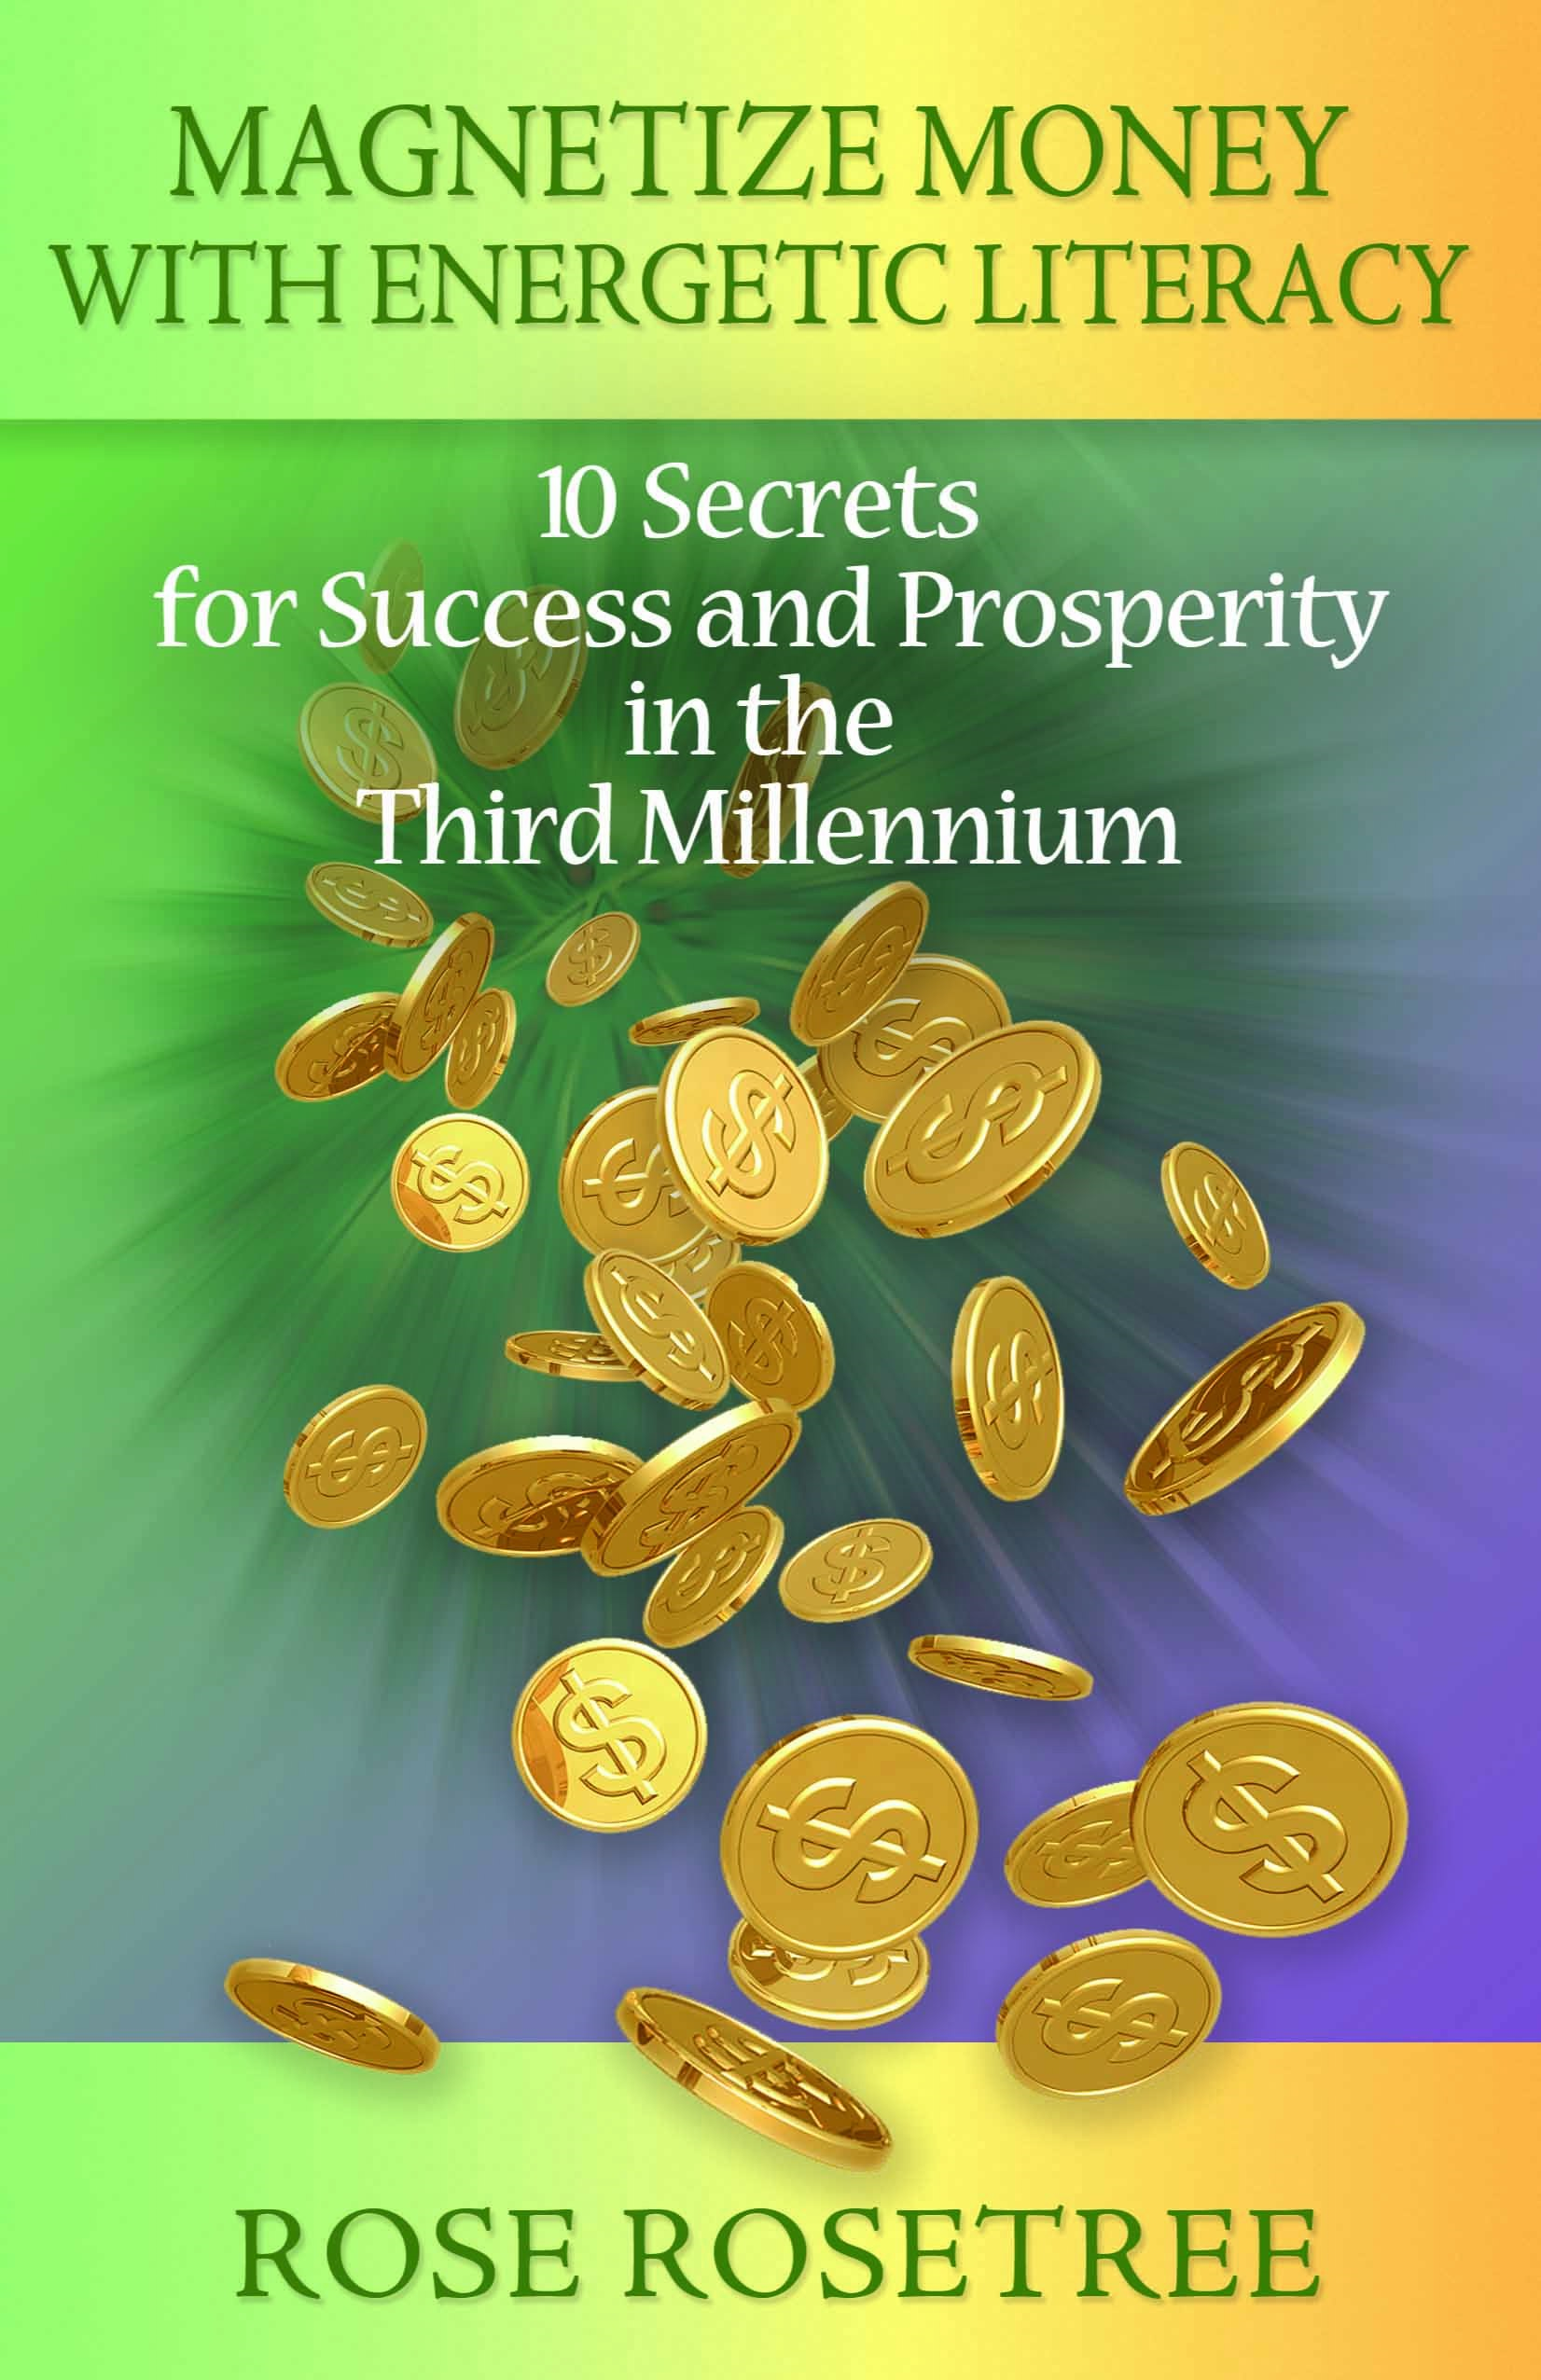 Magnetize Money with Energetic Literacy: 10 Secrets for Success and Prosperity in the Third Millennium (Smashwords Edition)